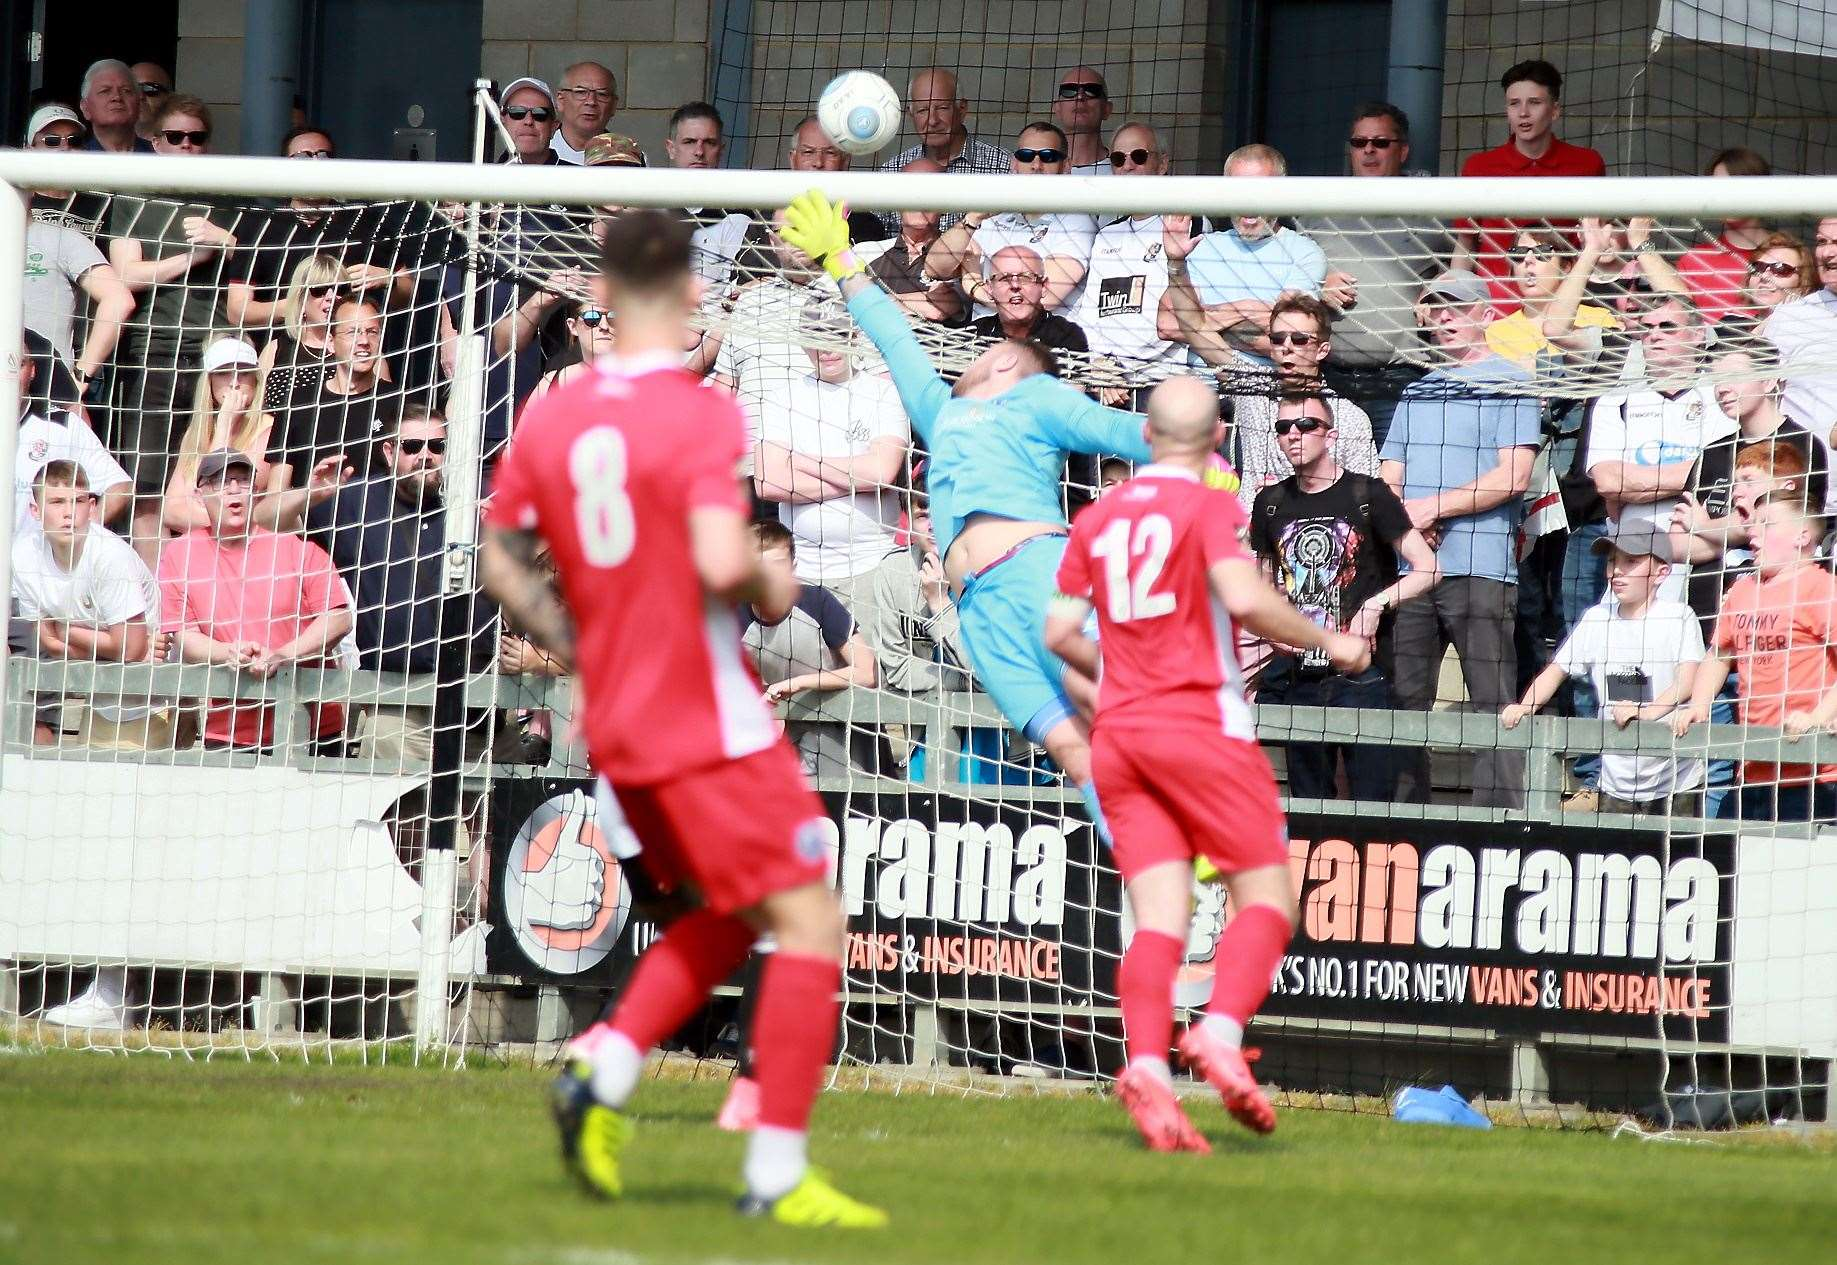 Mark Smith makes a good save playing for Billericay against Dartford Picture: Phil Lee